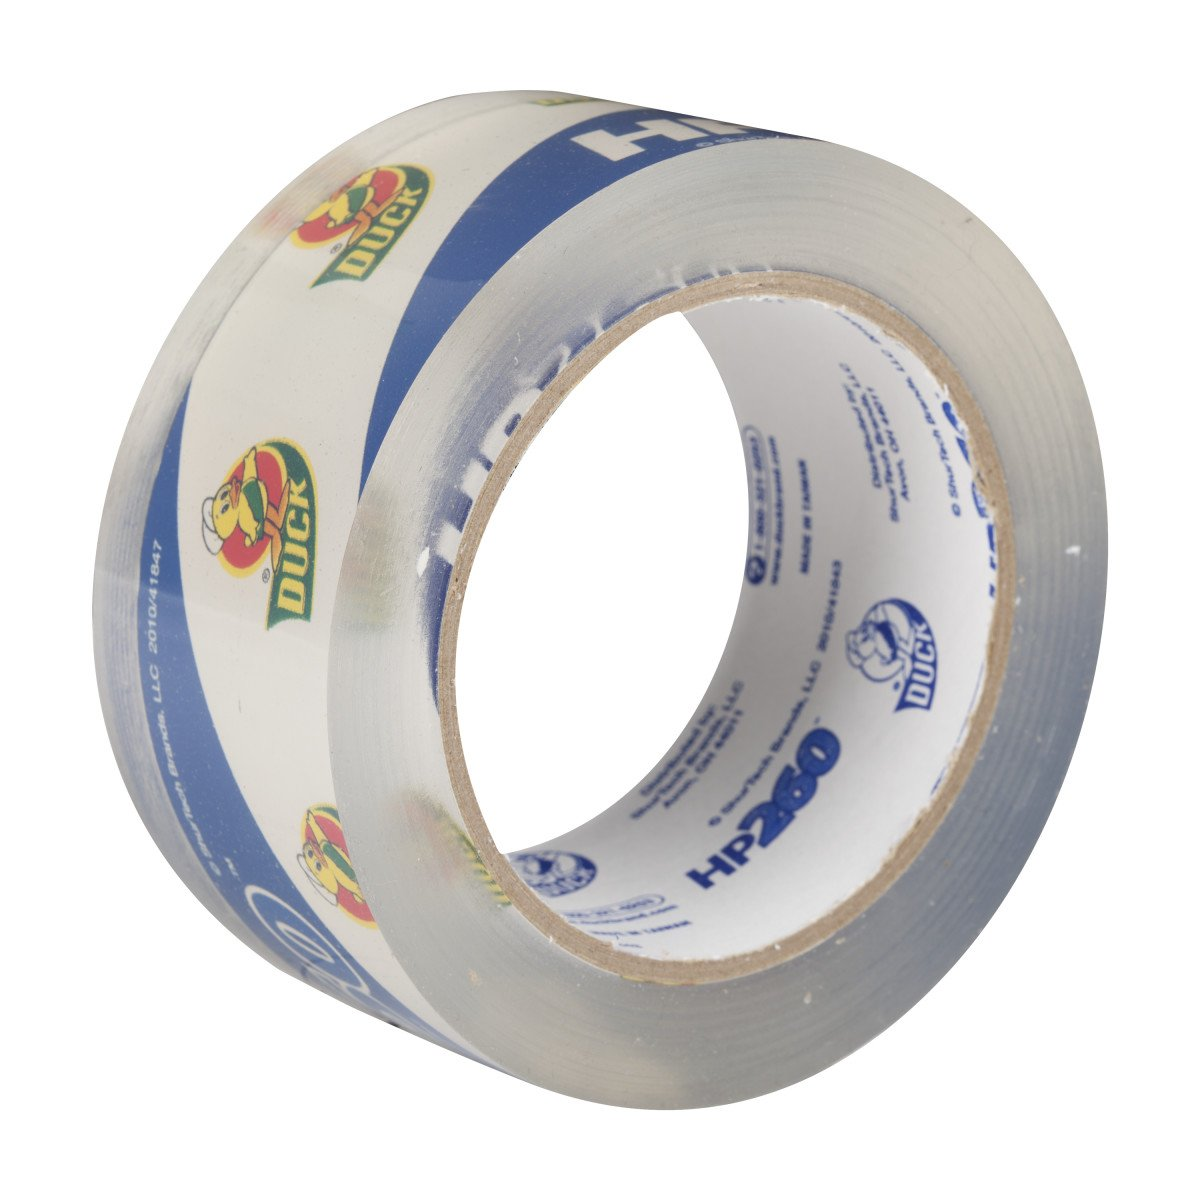 Duck HP260 Packing Tape Refill, 1.88 Inch x 60 Yard, Clear, 36 Rolls (1144714)